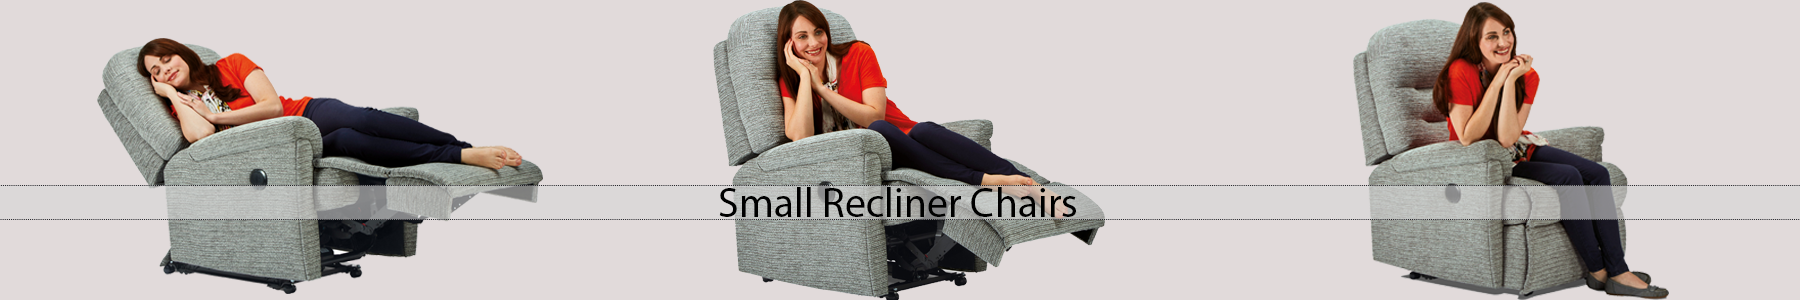 Small Recliner Chairs 1800